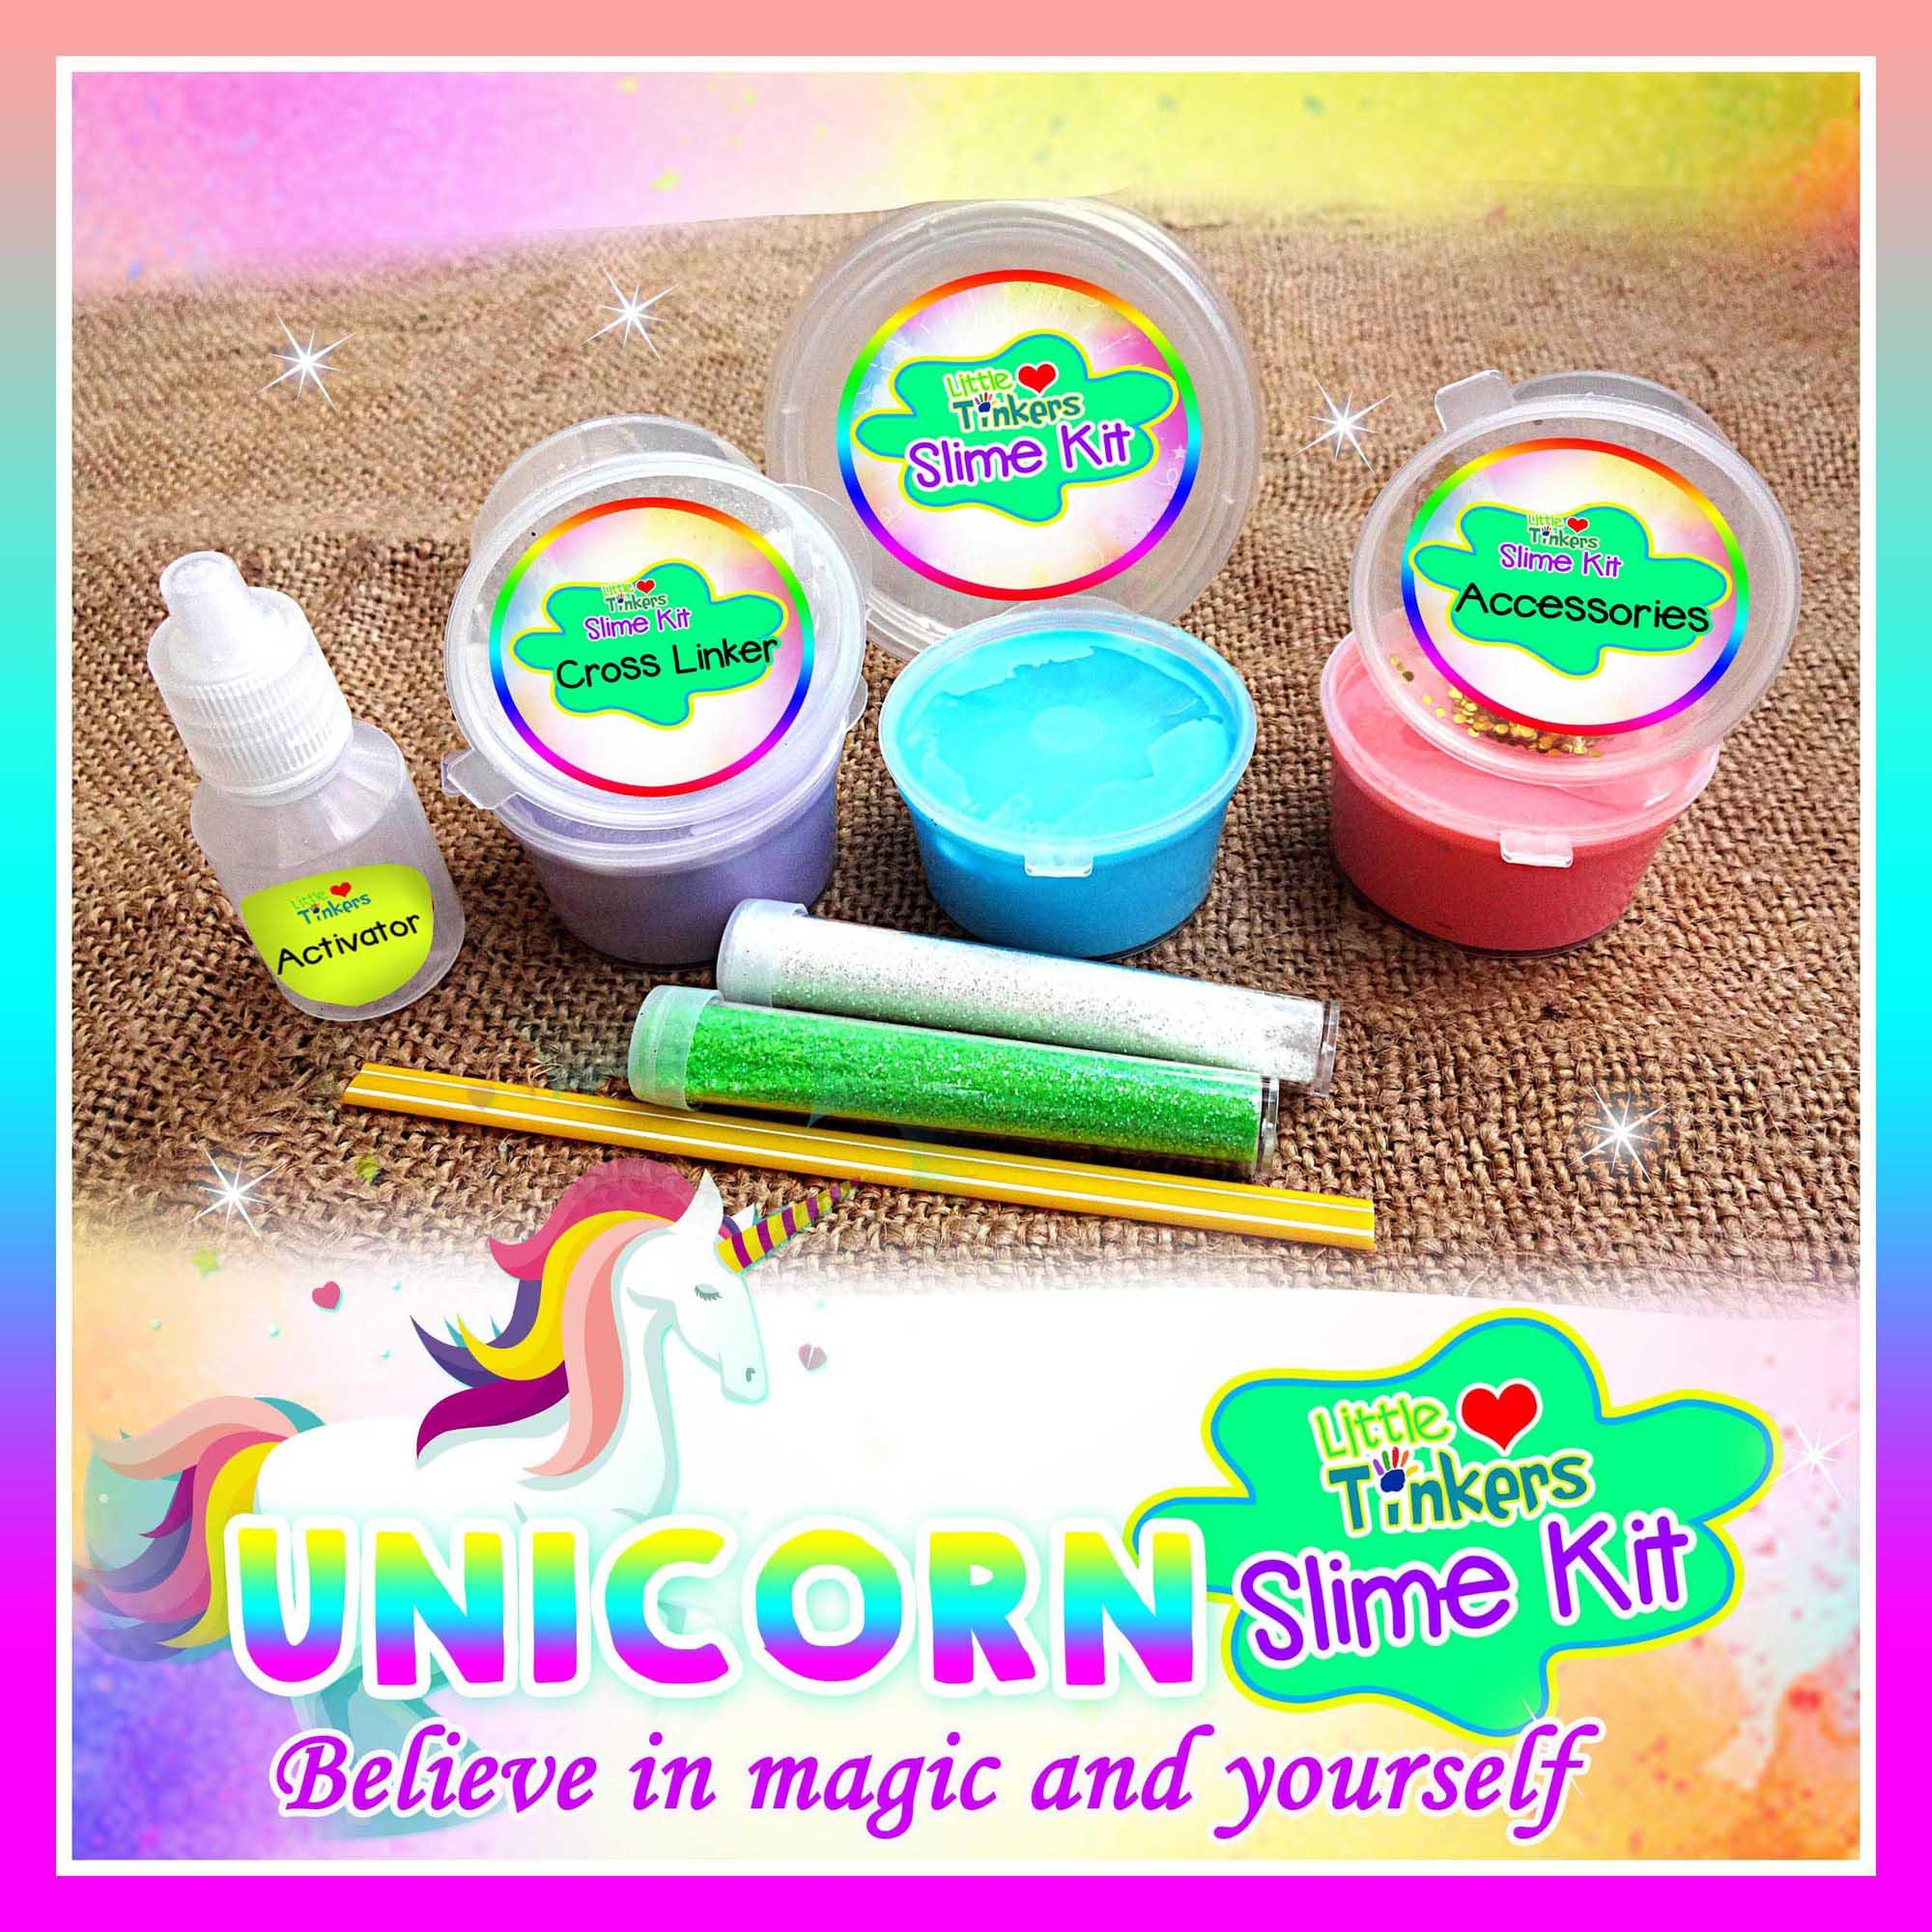 Slime putty for sale putty toys online brands prices reviews in unicorn slime kit solutioingenieria Images